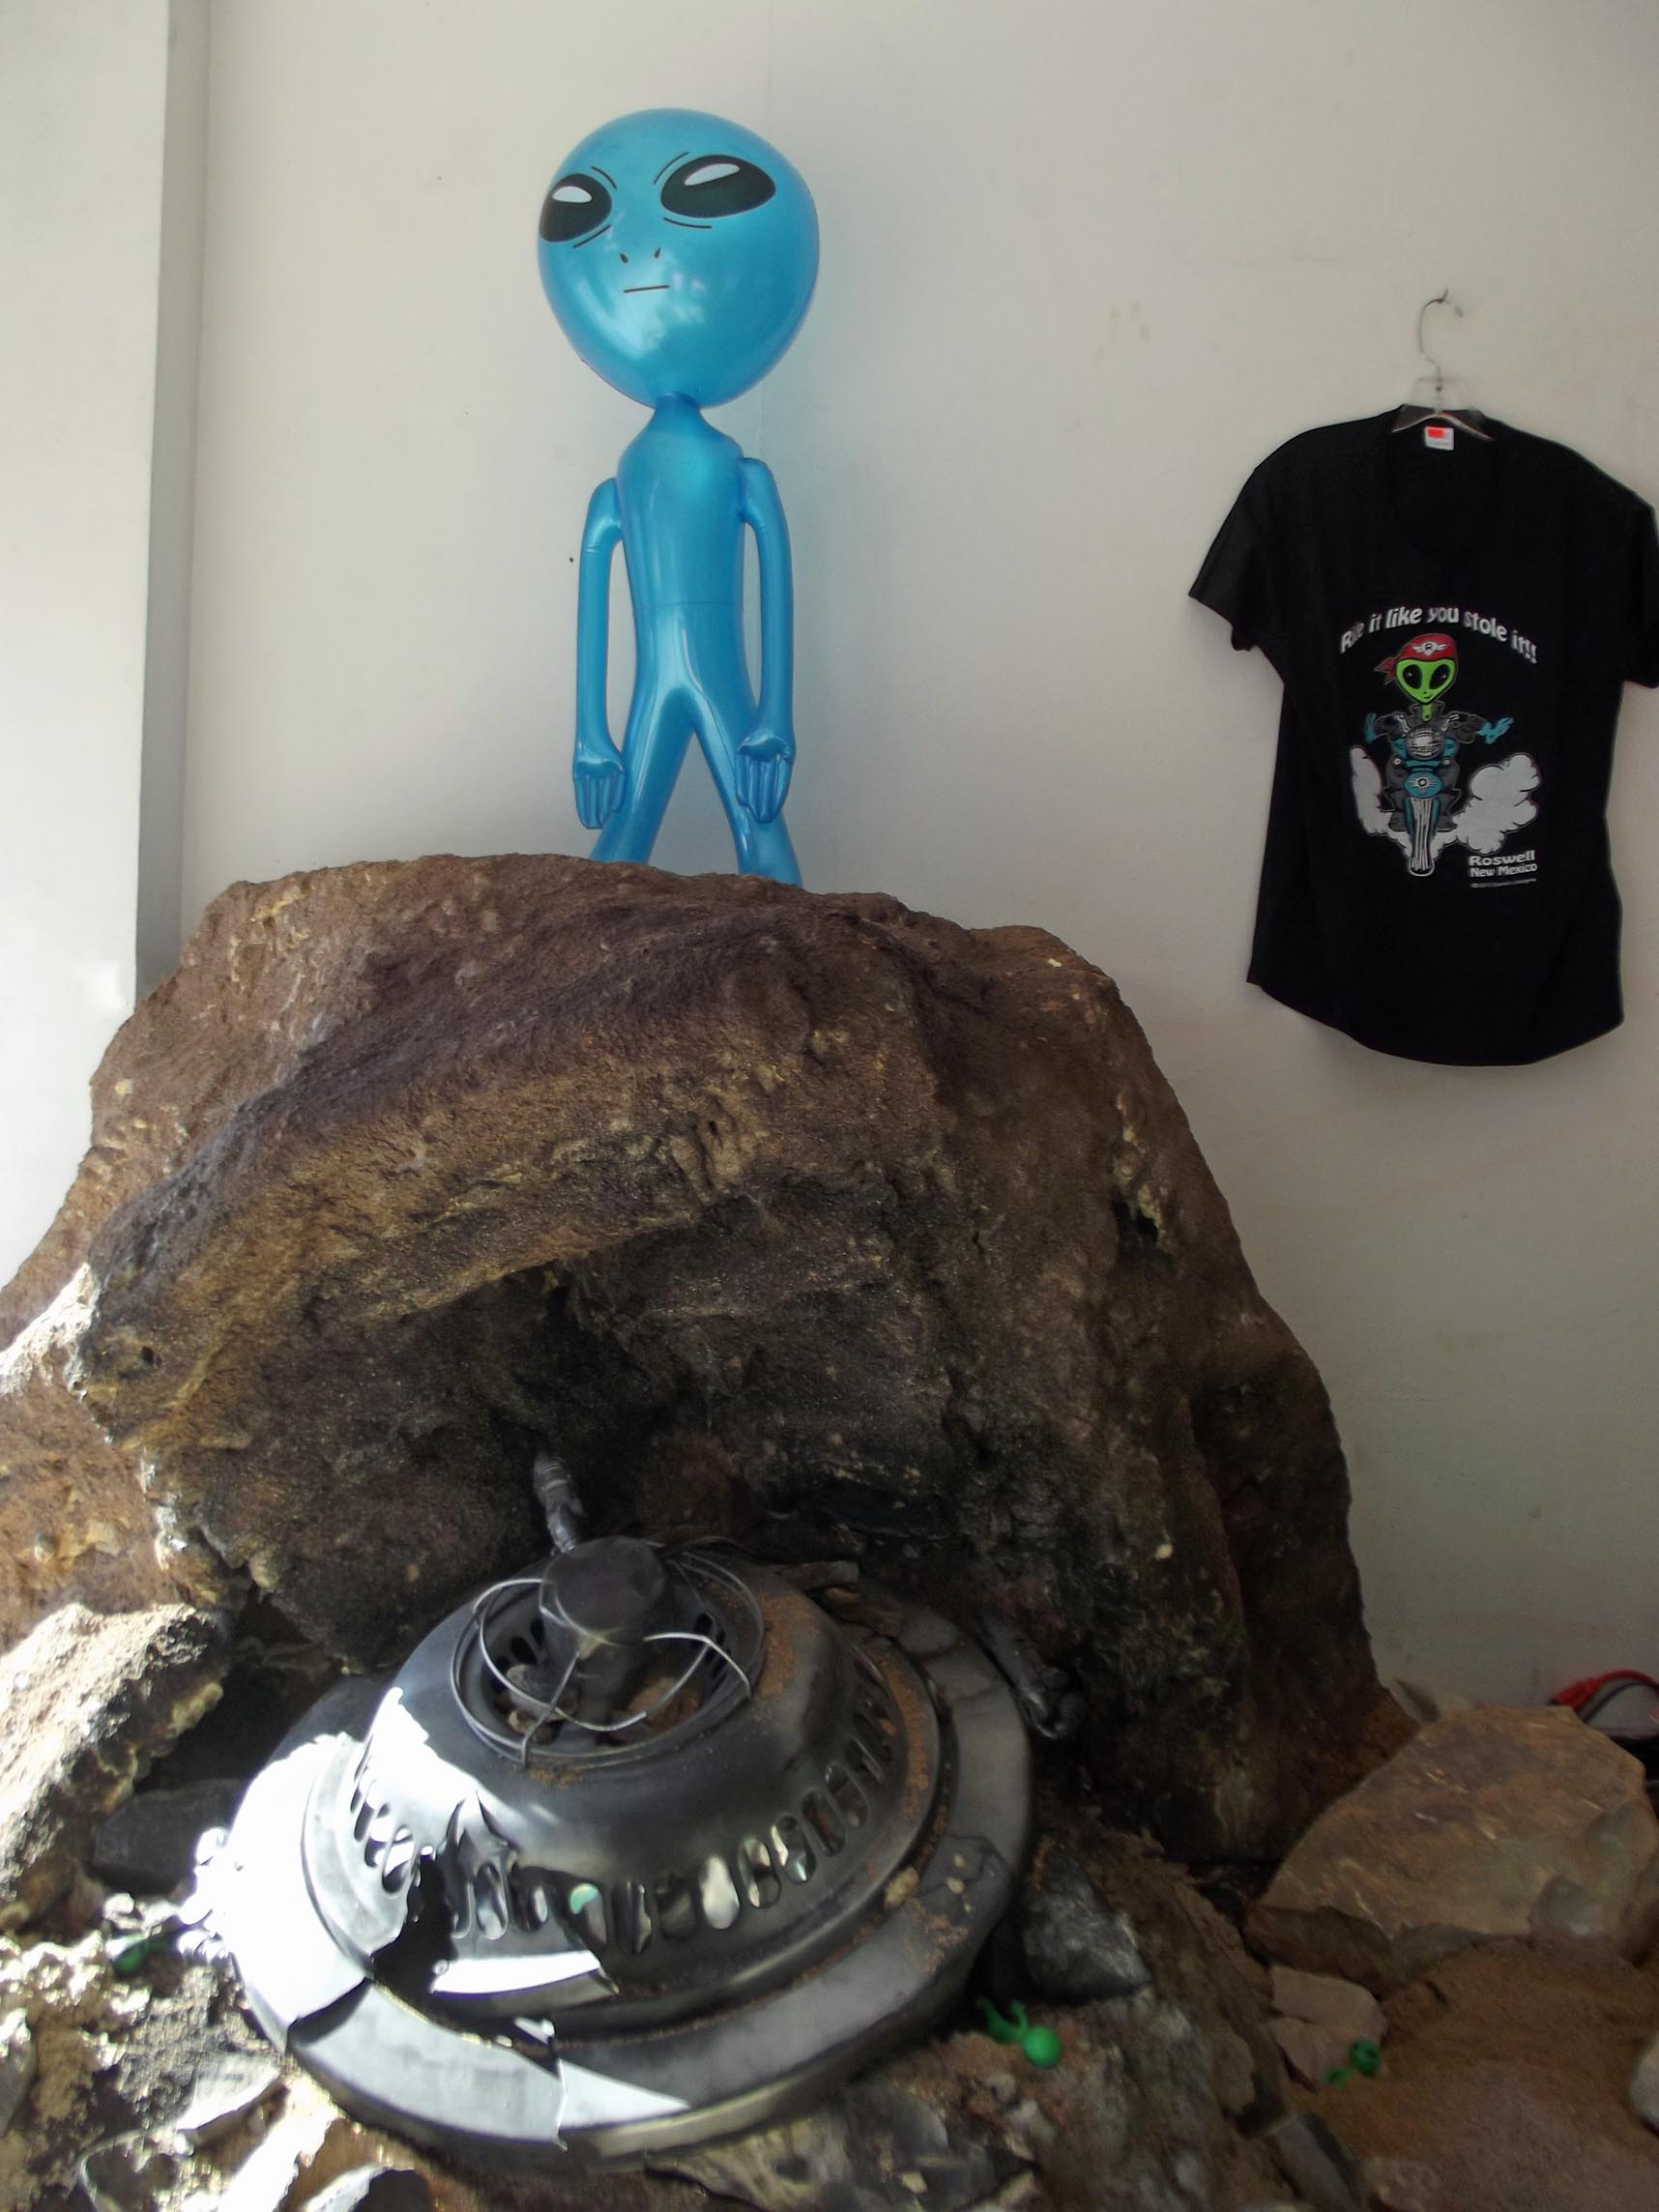 Display with flying saucer and blue alien